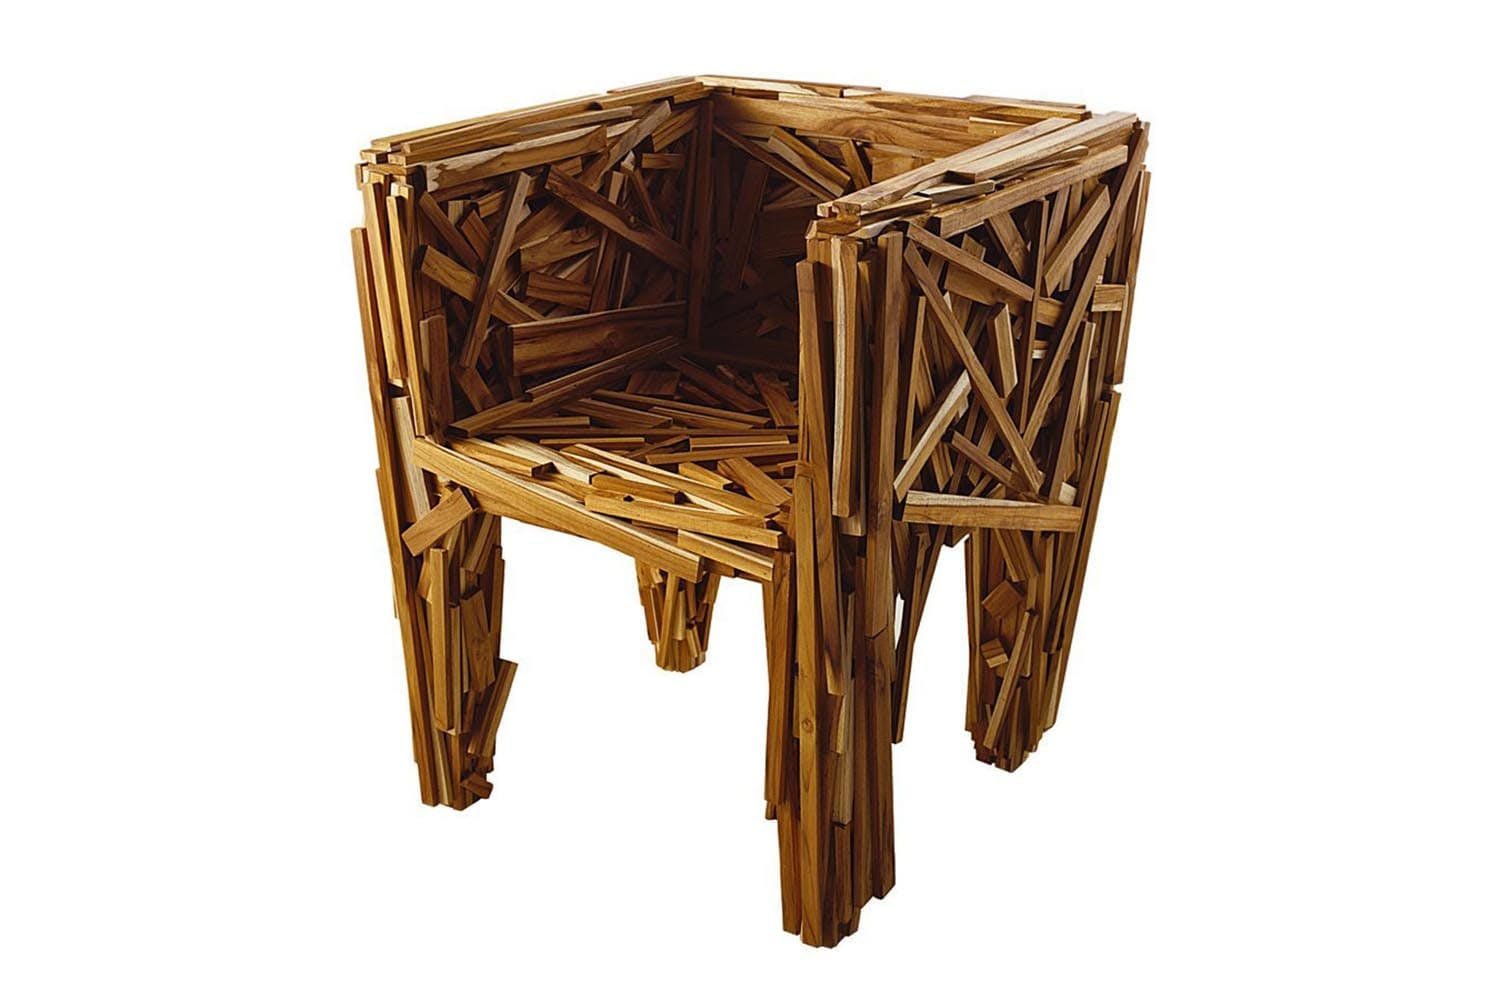 Edra FAVELA CHAIR Campana Brothers Owo Online Design Store